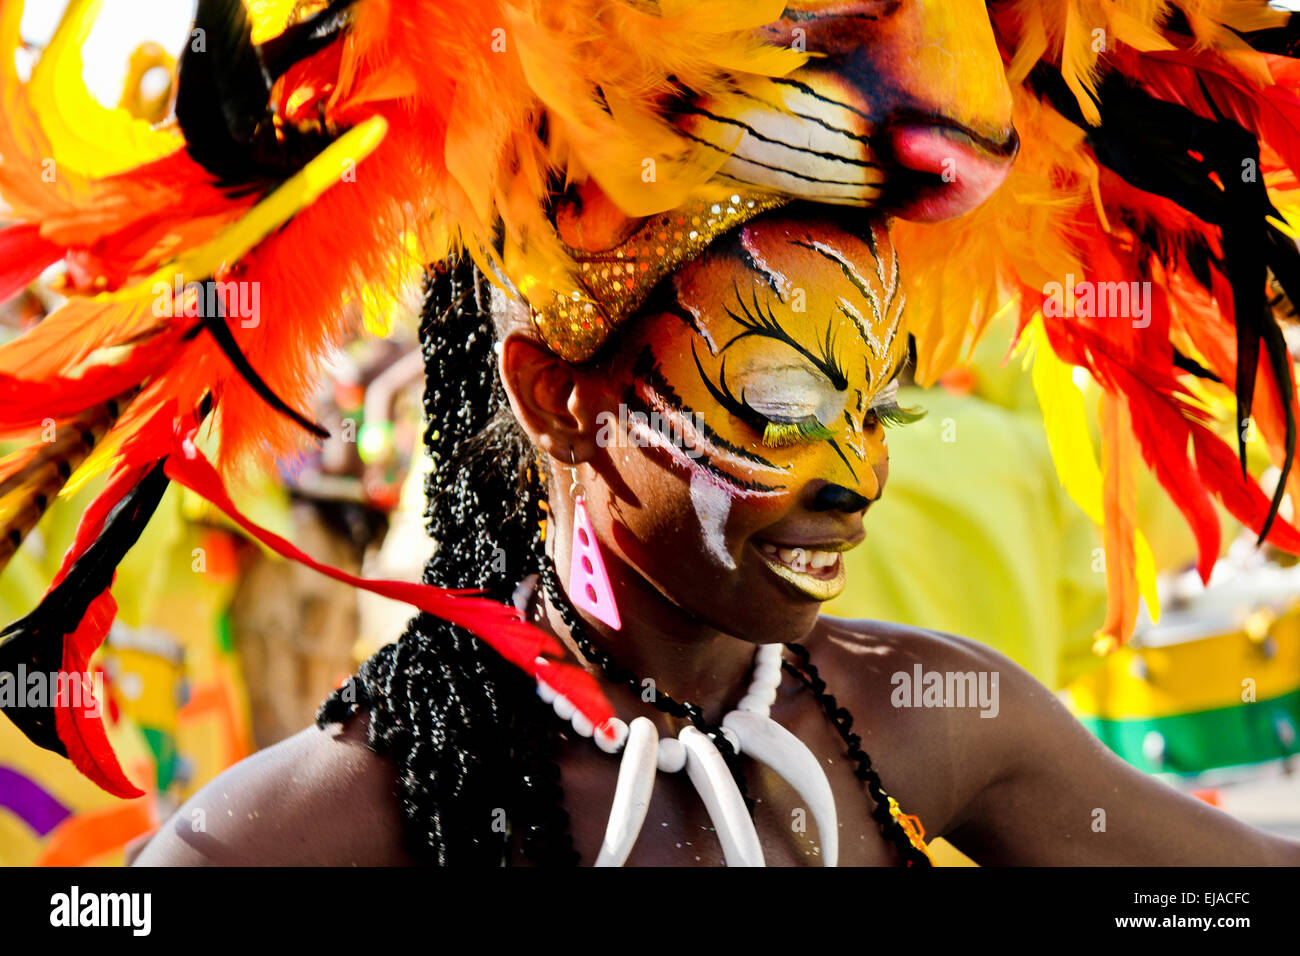 A Colombian girl, having a tiger mask, dances Mapalé during the Carnival in Barranquilla, Colombia. - Stock Image